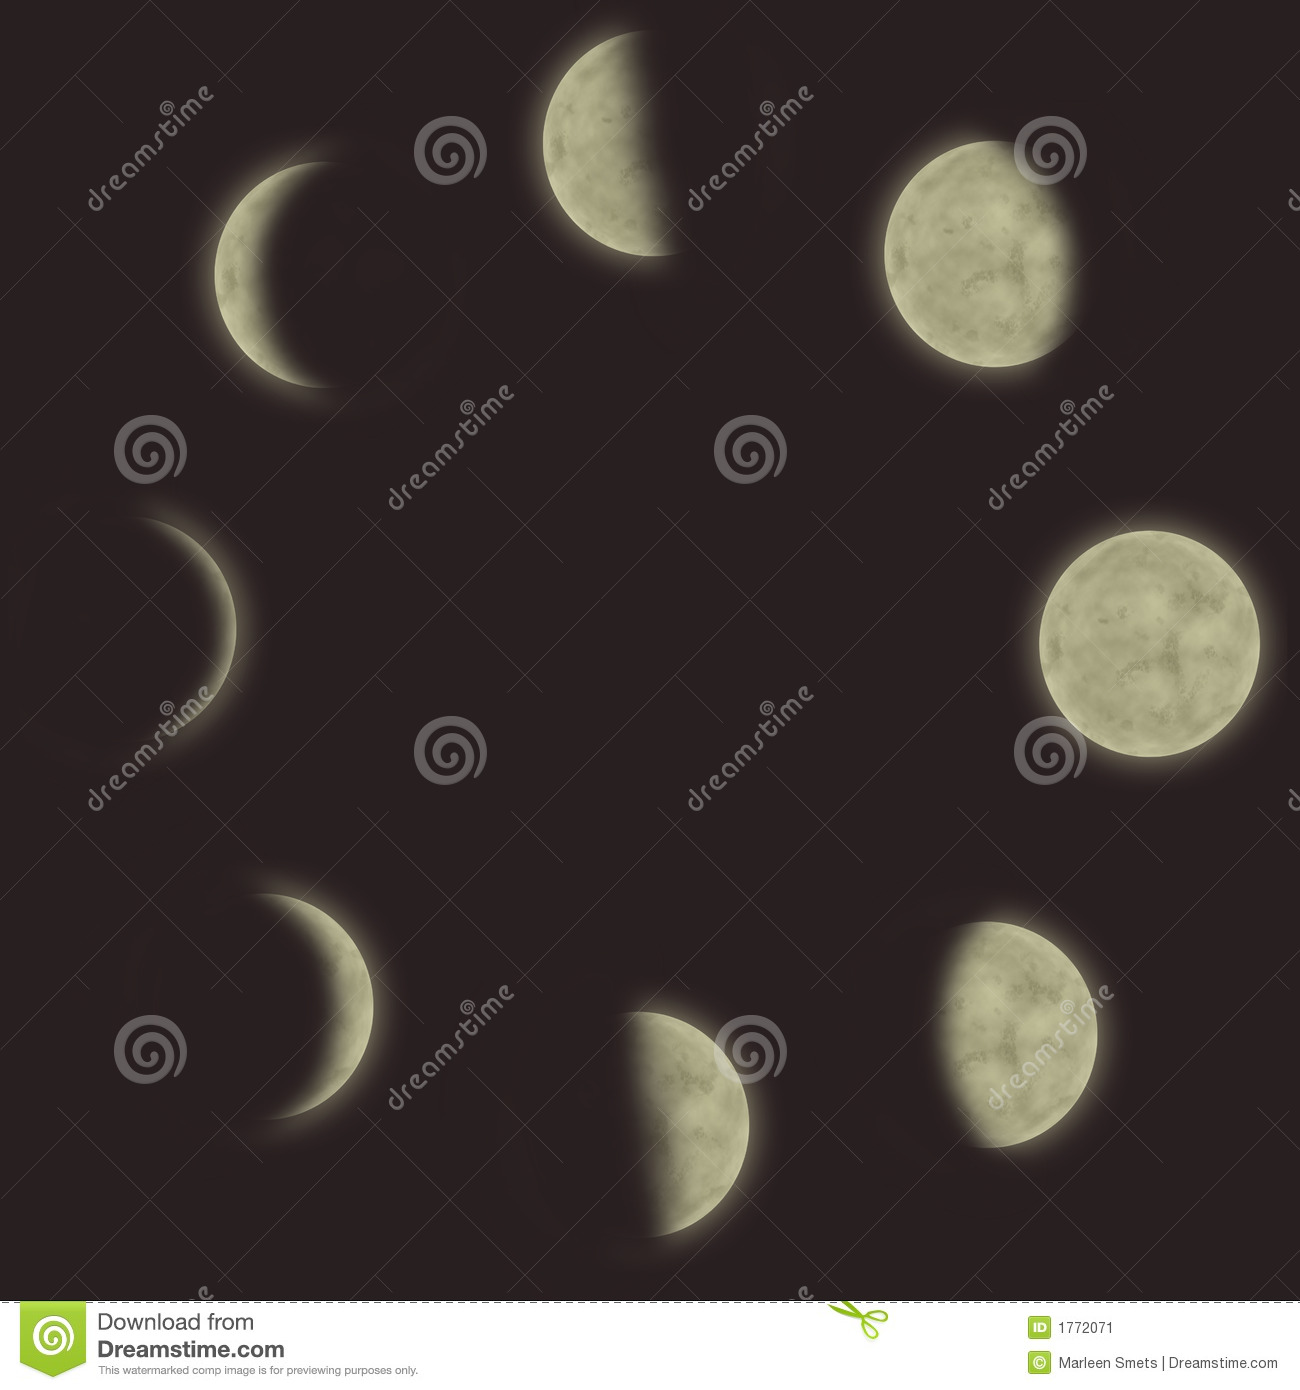 Calendar Vector : Different phases of the moon stock illustration